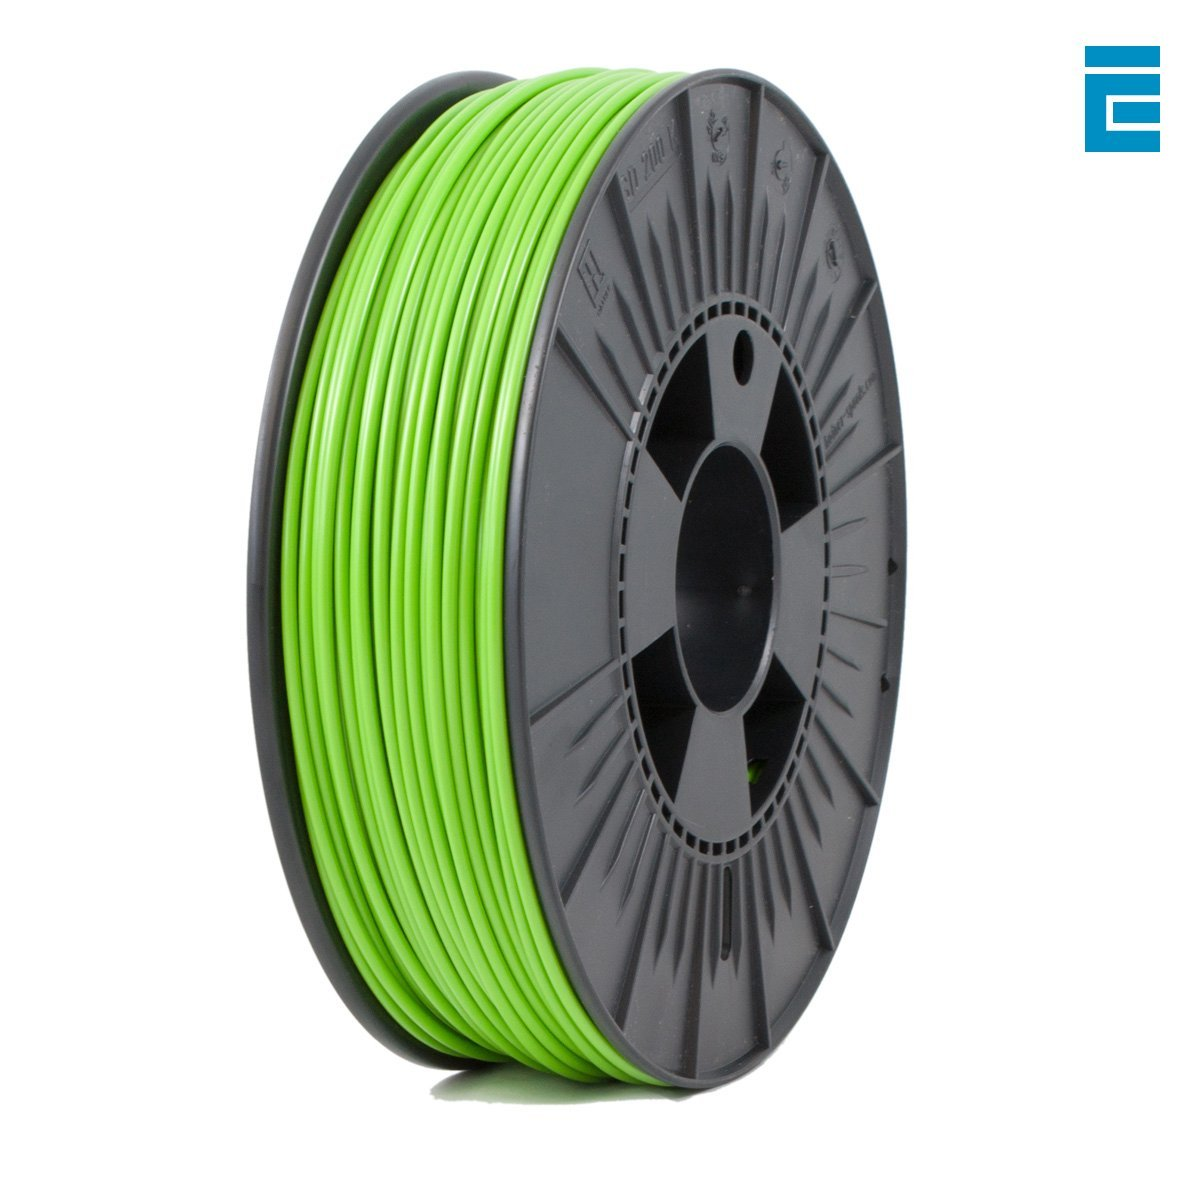 ICE Filaments ICEFIL3PLA012 PLA filament, 2.85mm, 0.75 kg, Gracious Green